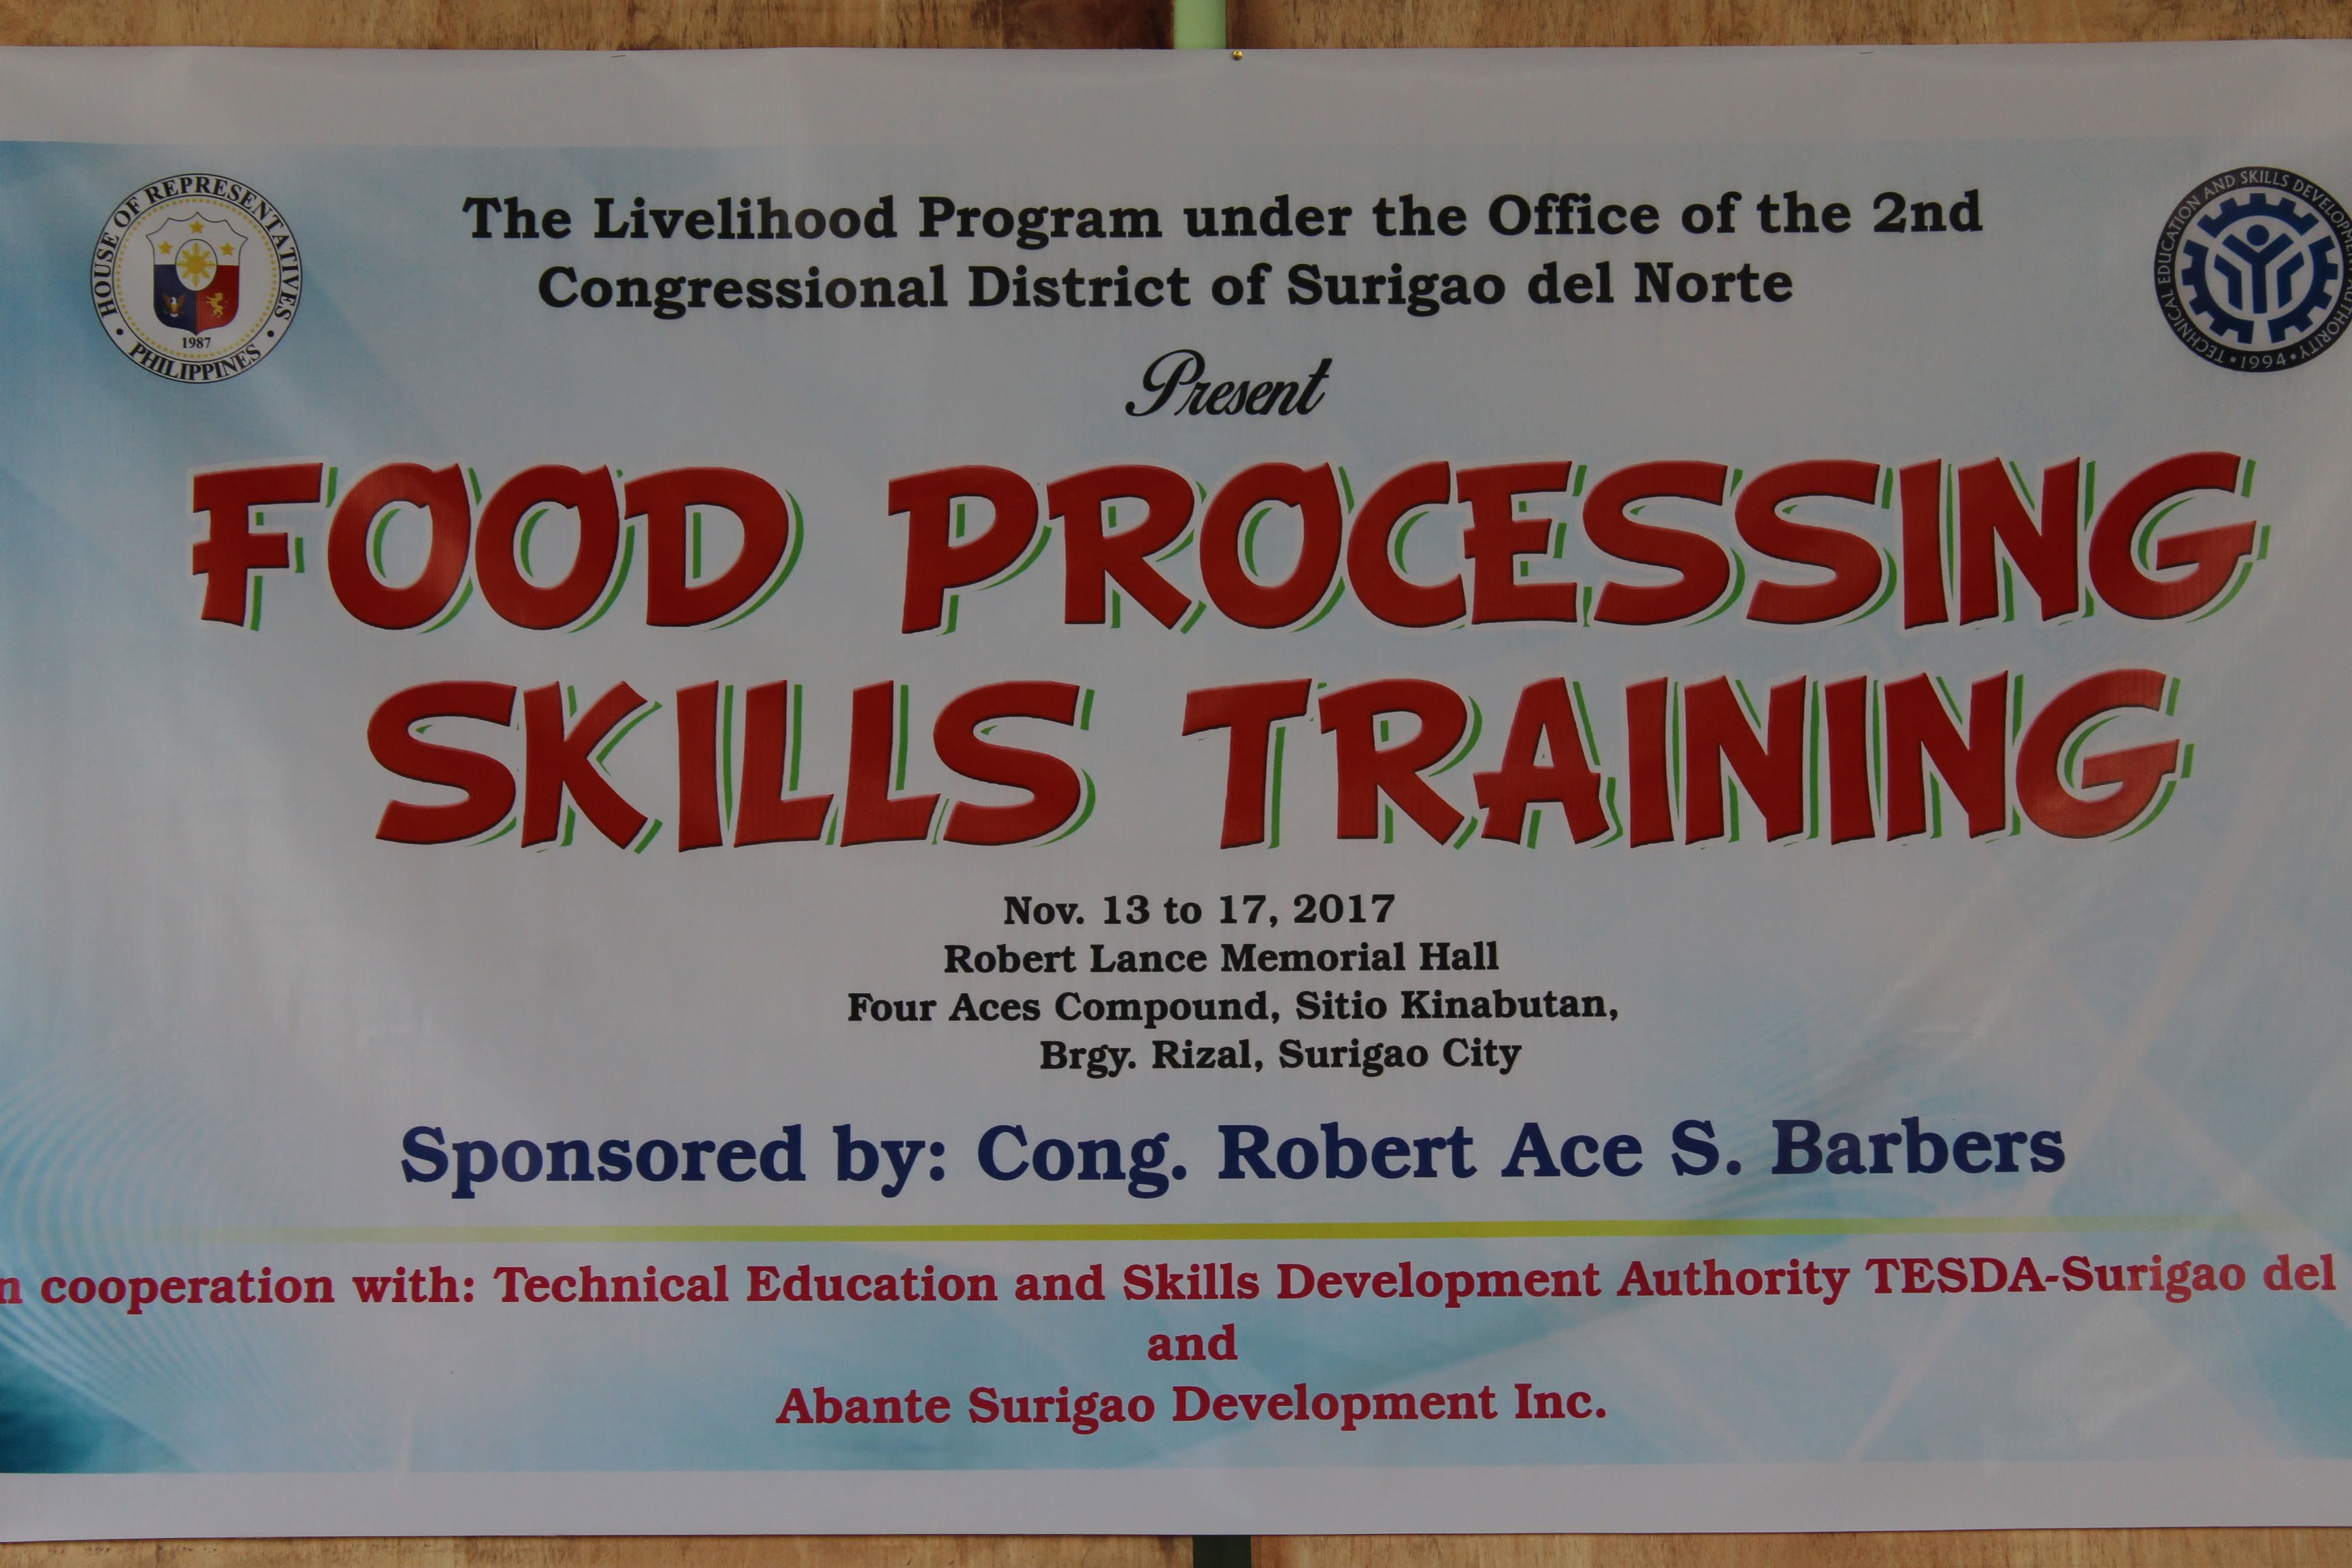 Print Page Del City Press Release The Livelihood Program Under Office Of 2nd Congressional District Surigao Norte Launched Food Processing Skills Training At Robert Lance